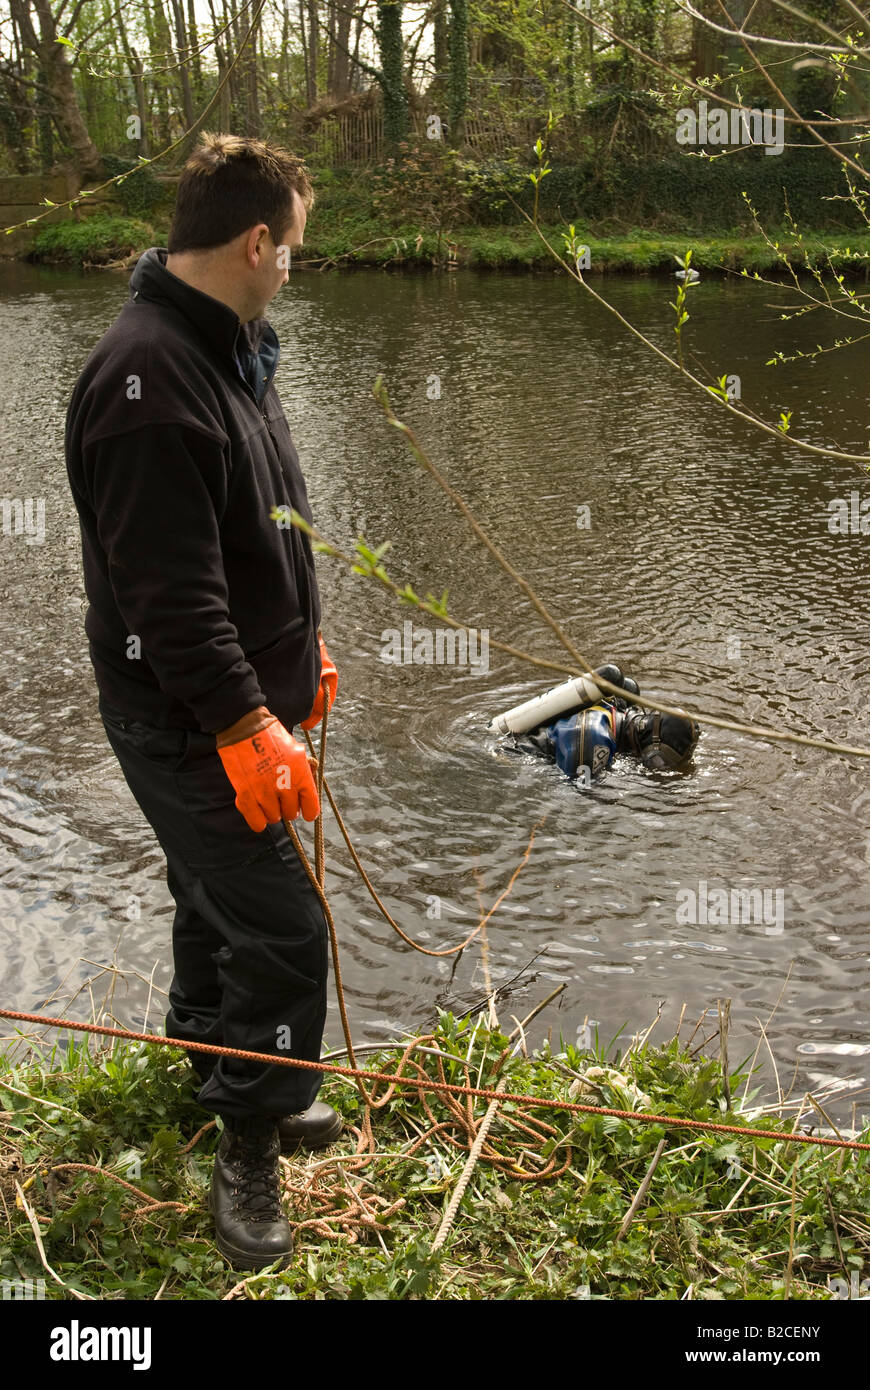 Police diver part of the forces underwater search unit - Stock Image